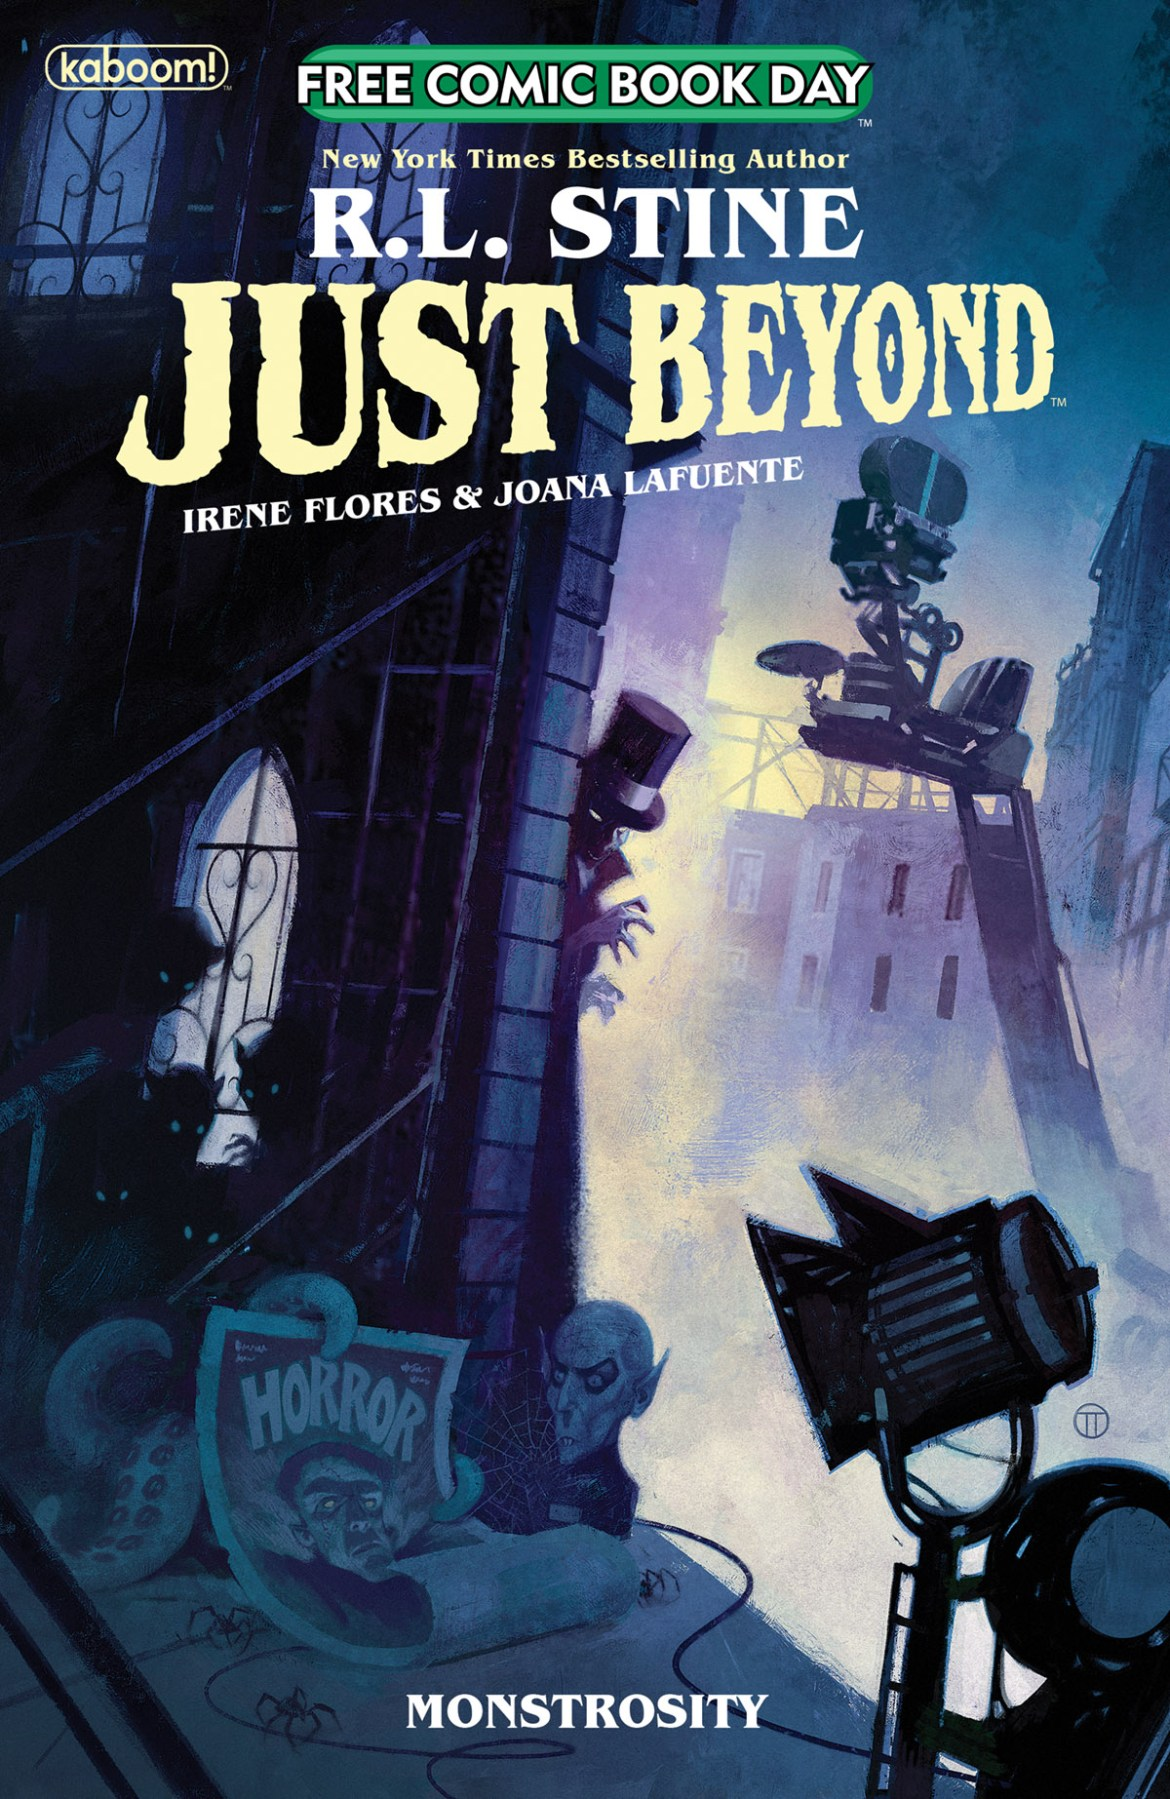 FCBD21_SILVER_BOOM-Studios_Just-Beyond Complete Free Comic Book Day 2021 comic book line-up announced